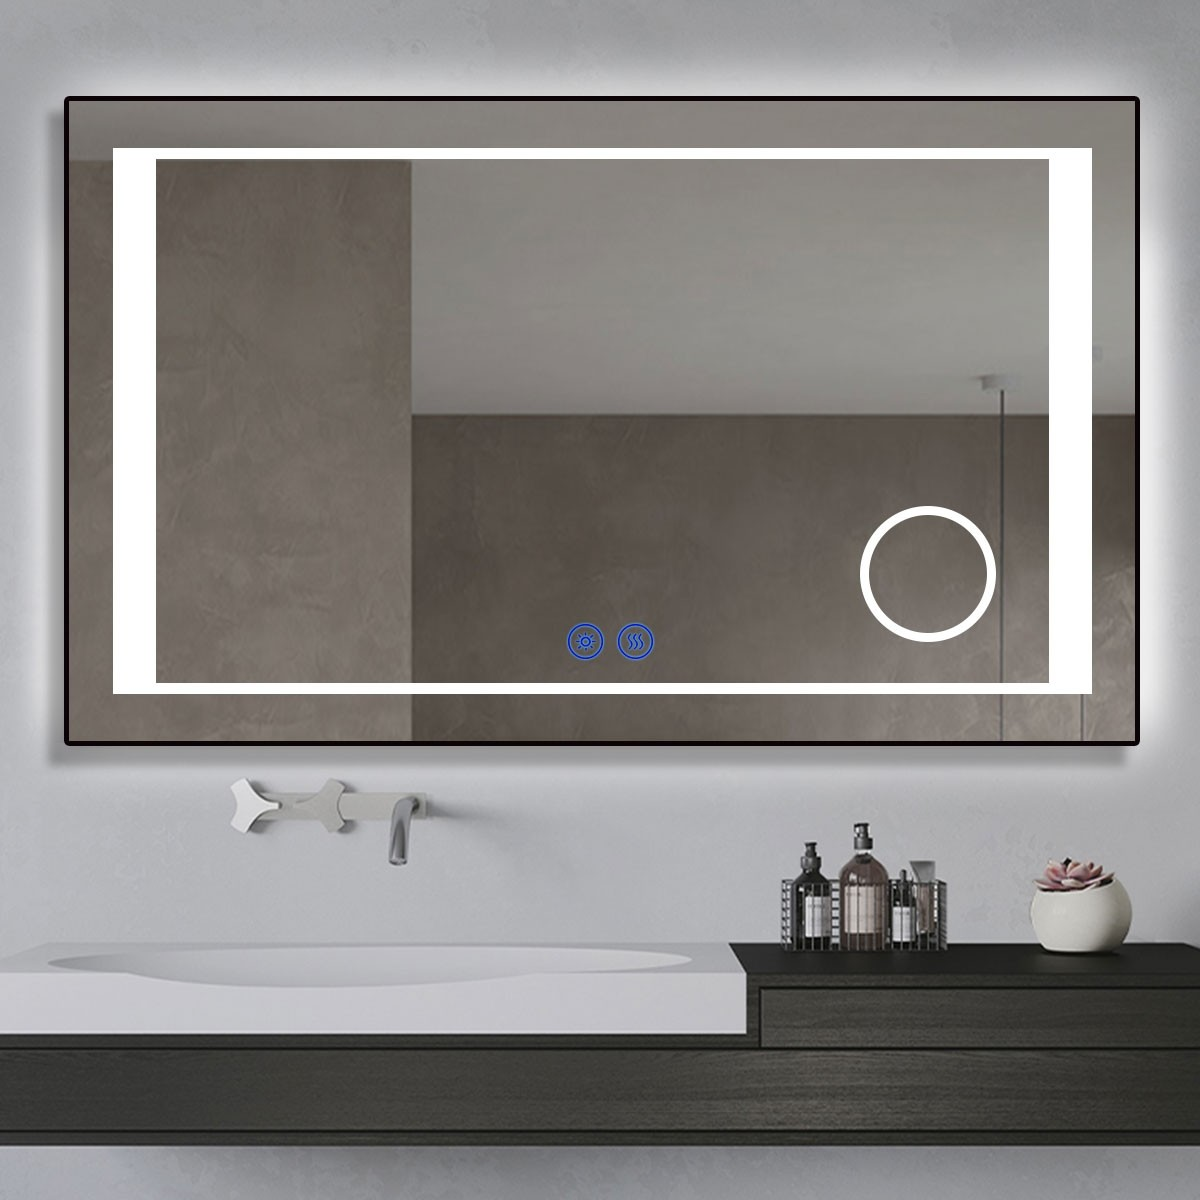 DECORAPORT 40 x 24 Inch LED Bathroom Mirror/Dress Mirror with Touch Button, Magnifier, Anti Fog, Dimmable, Vertical & Horizontal Mount (KT11-4024)